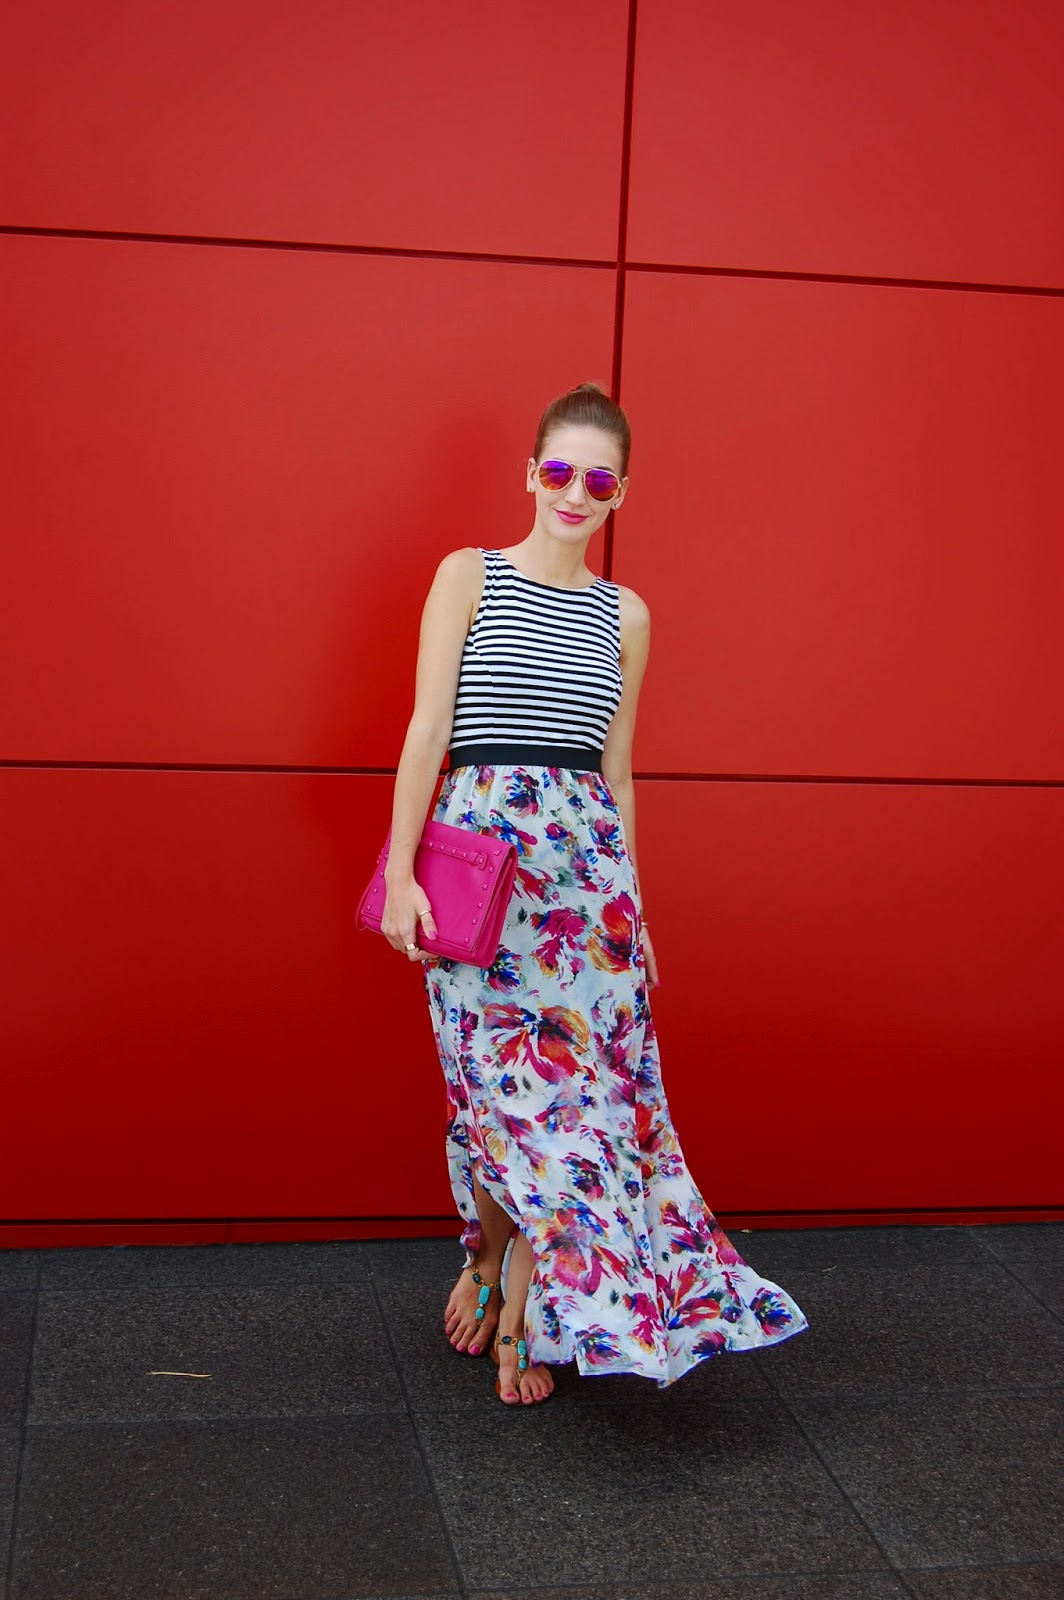 Wearing Target Xhileration Floral Striped Maxi Dress, Neiman Marcus Pink Studded Tonal Clutch, Summer 2014 Maxi dress looks